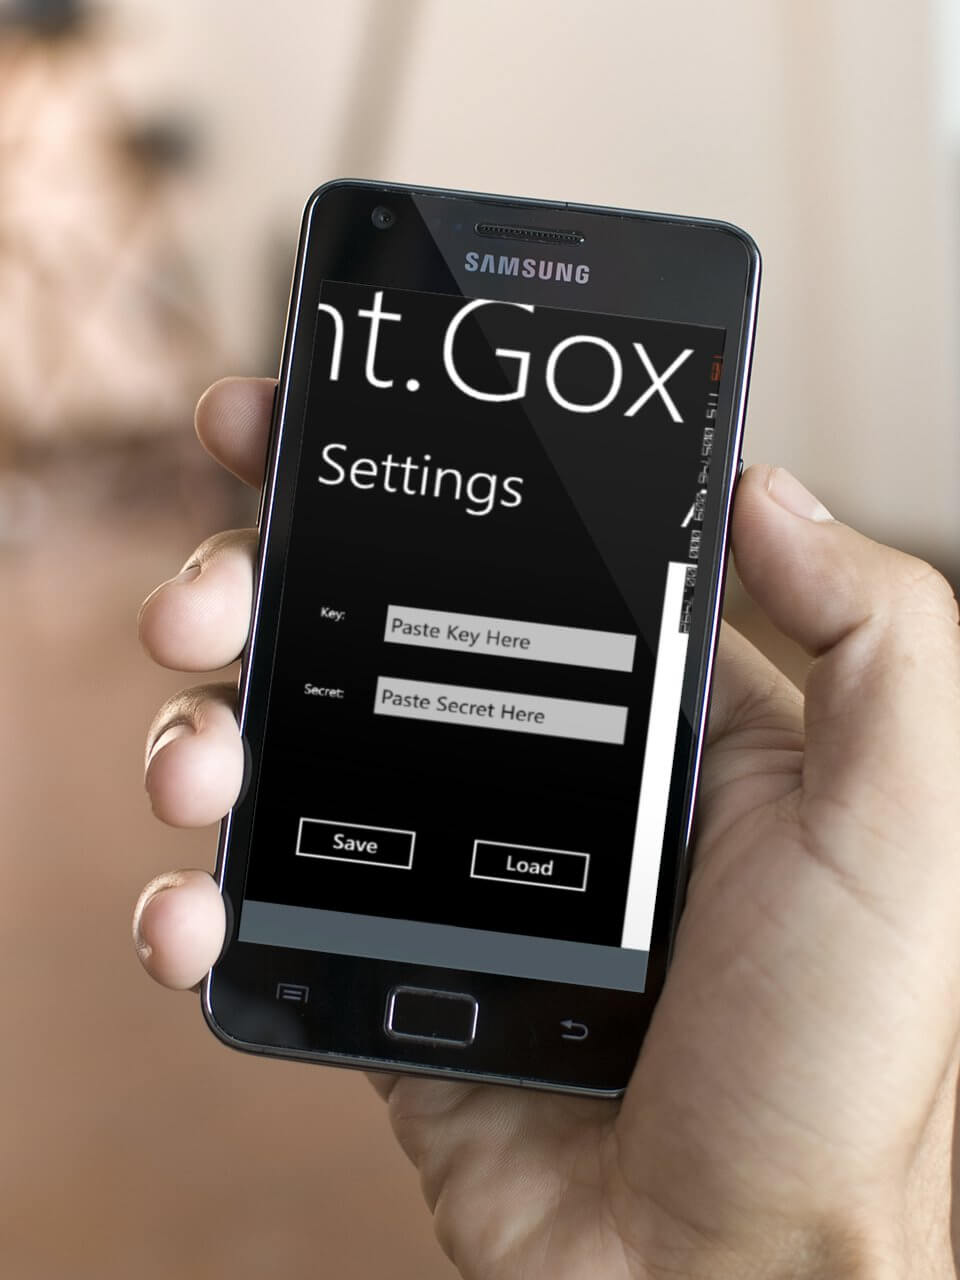 mt.goc app on windows phone concept